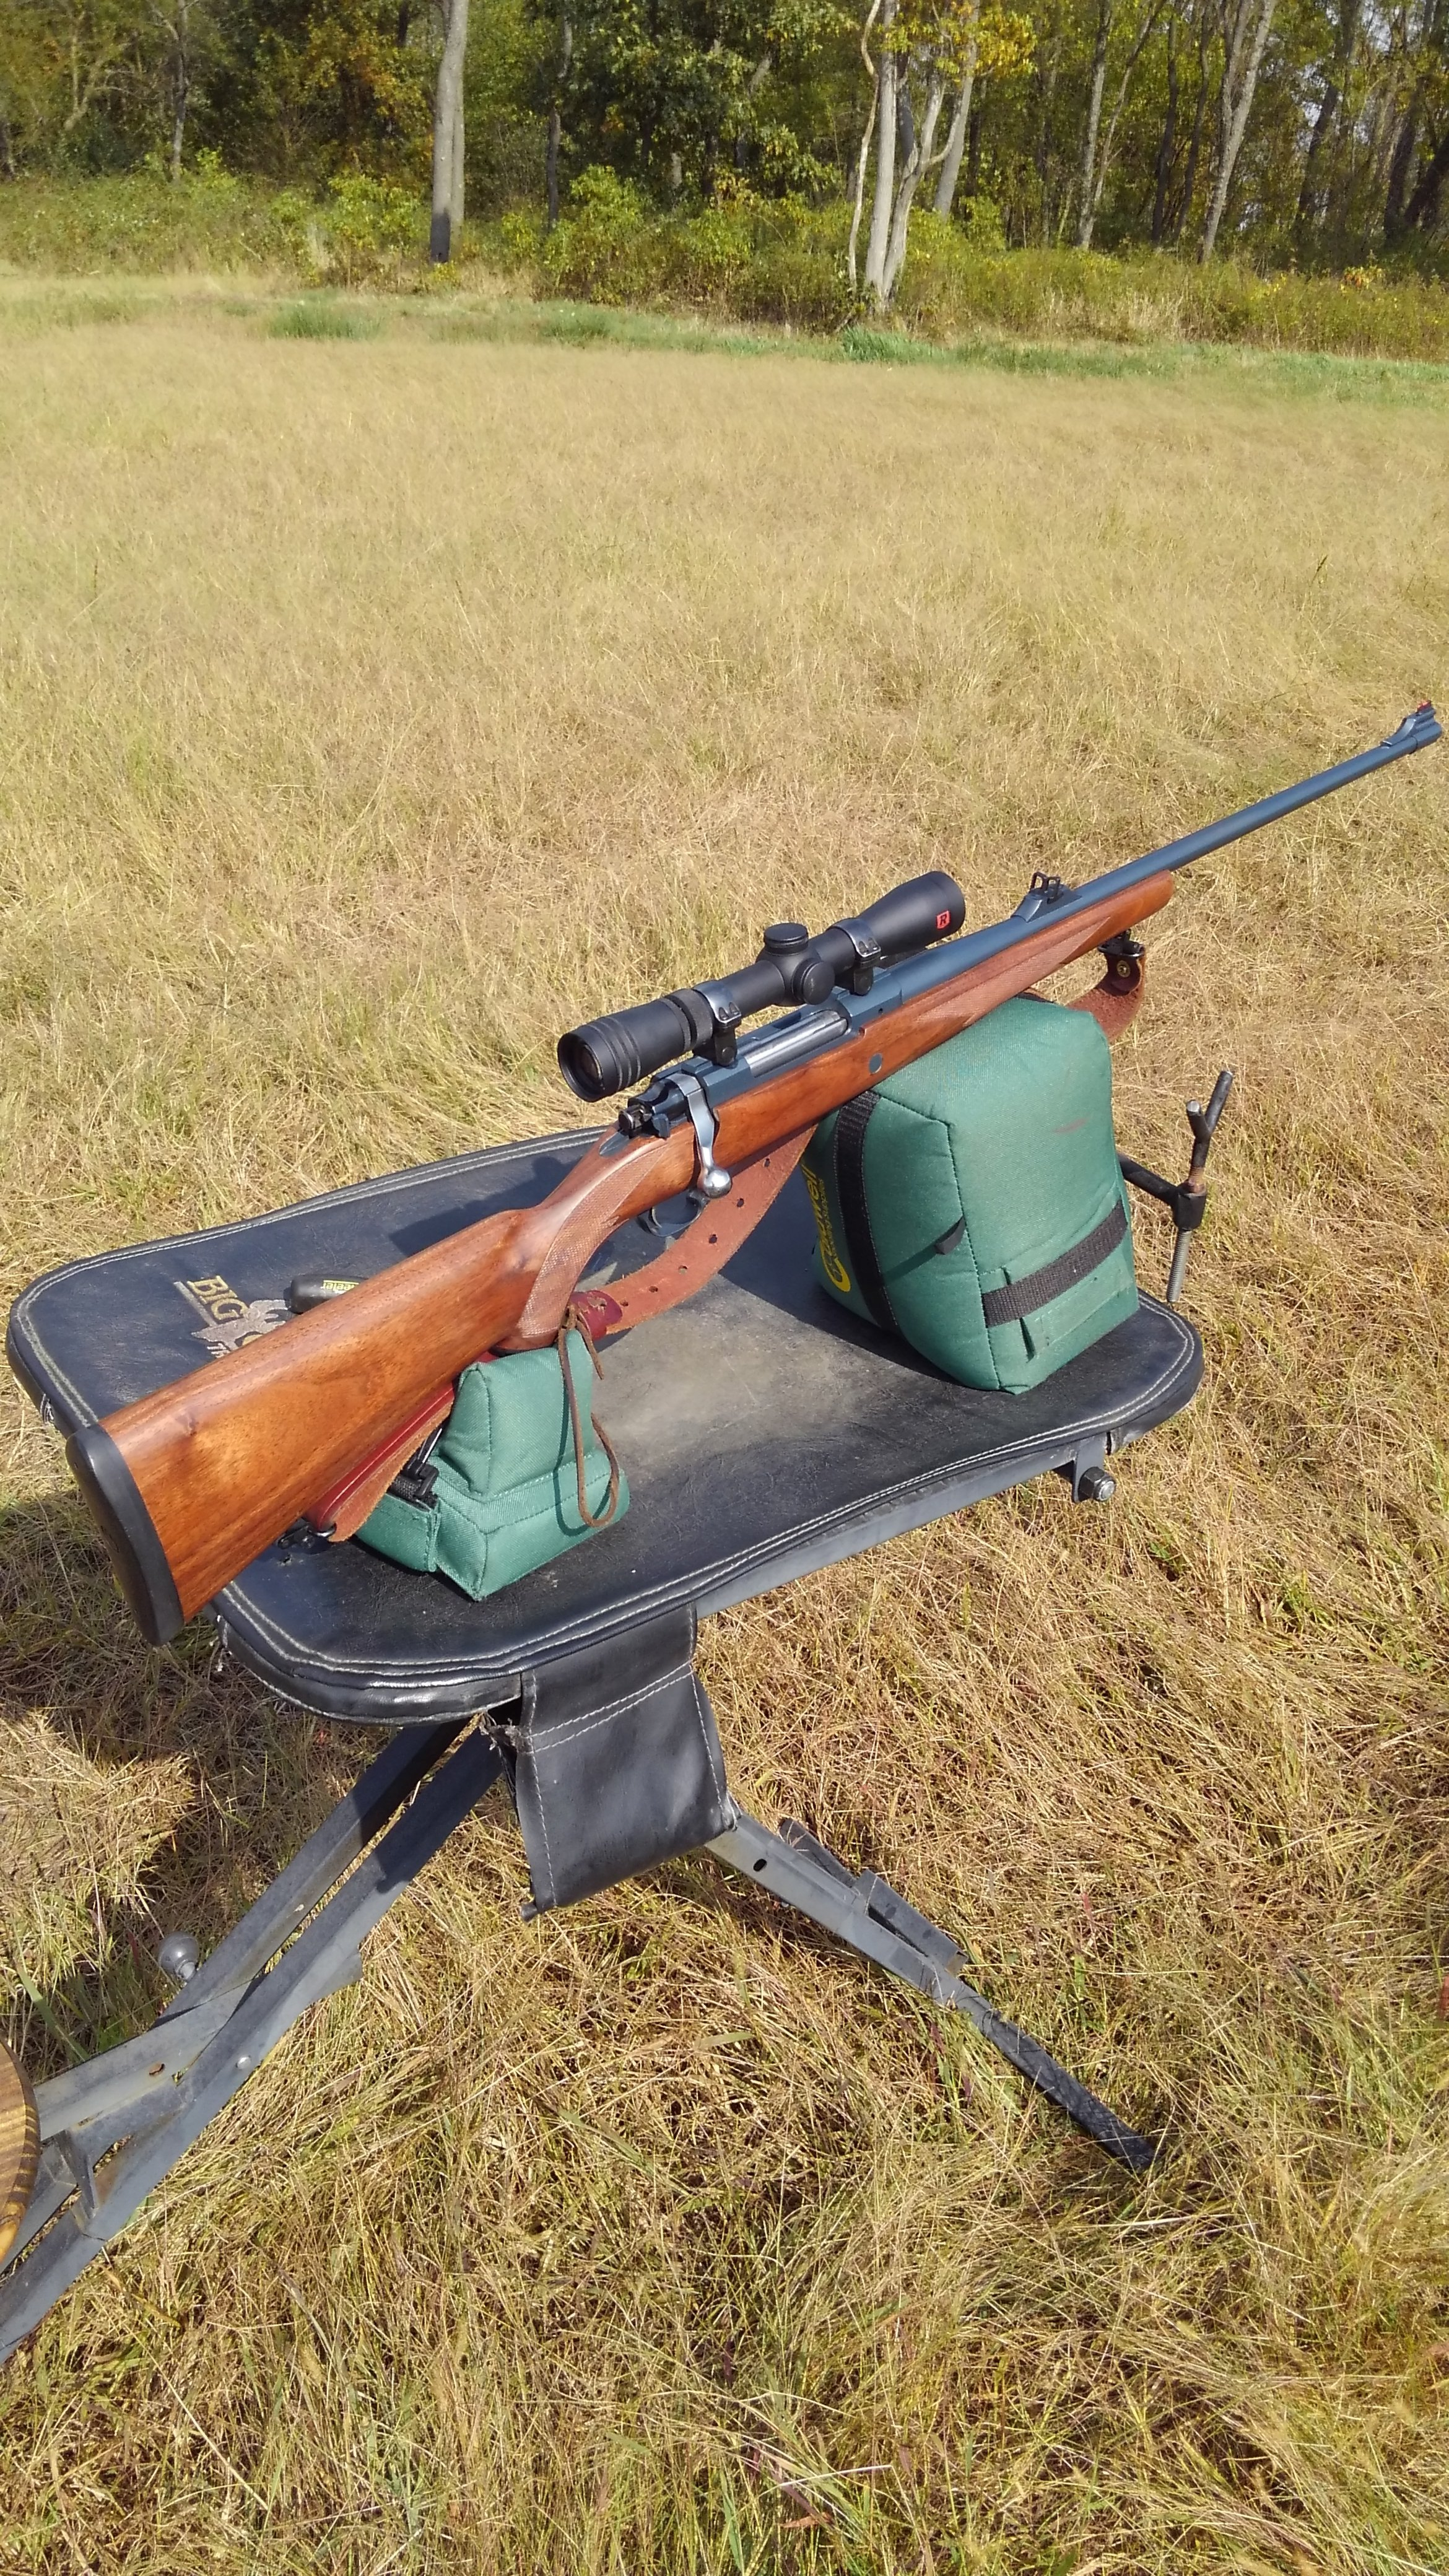 Ruger 77 mkII 358 Norma Mag - Commercial Sporting Rifles - Military